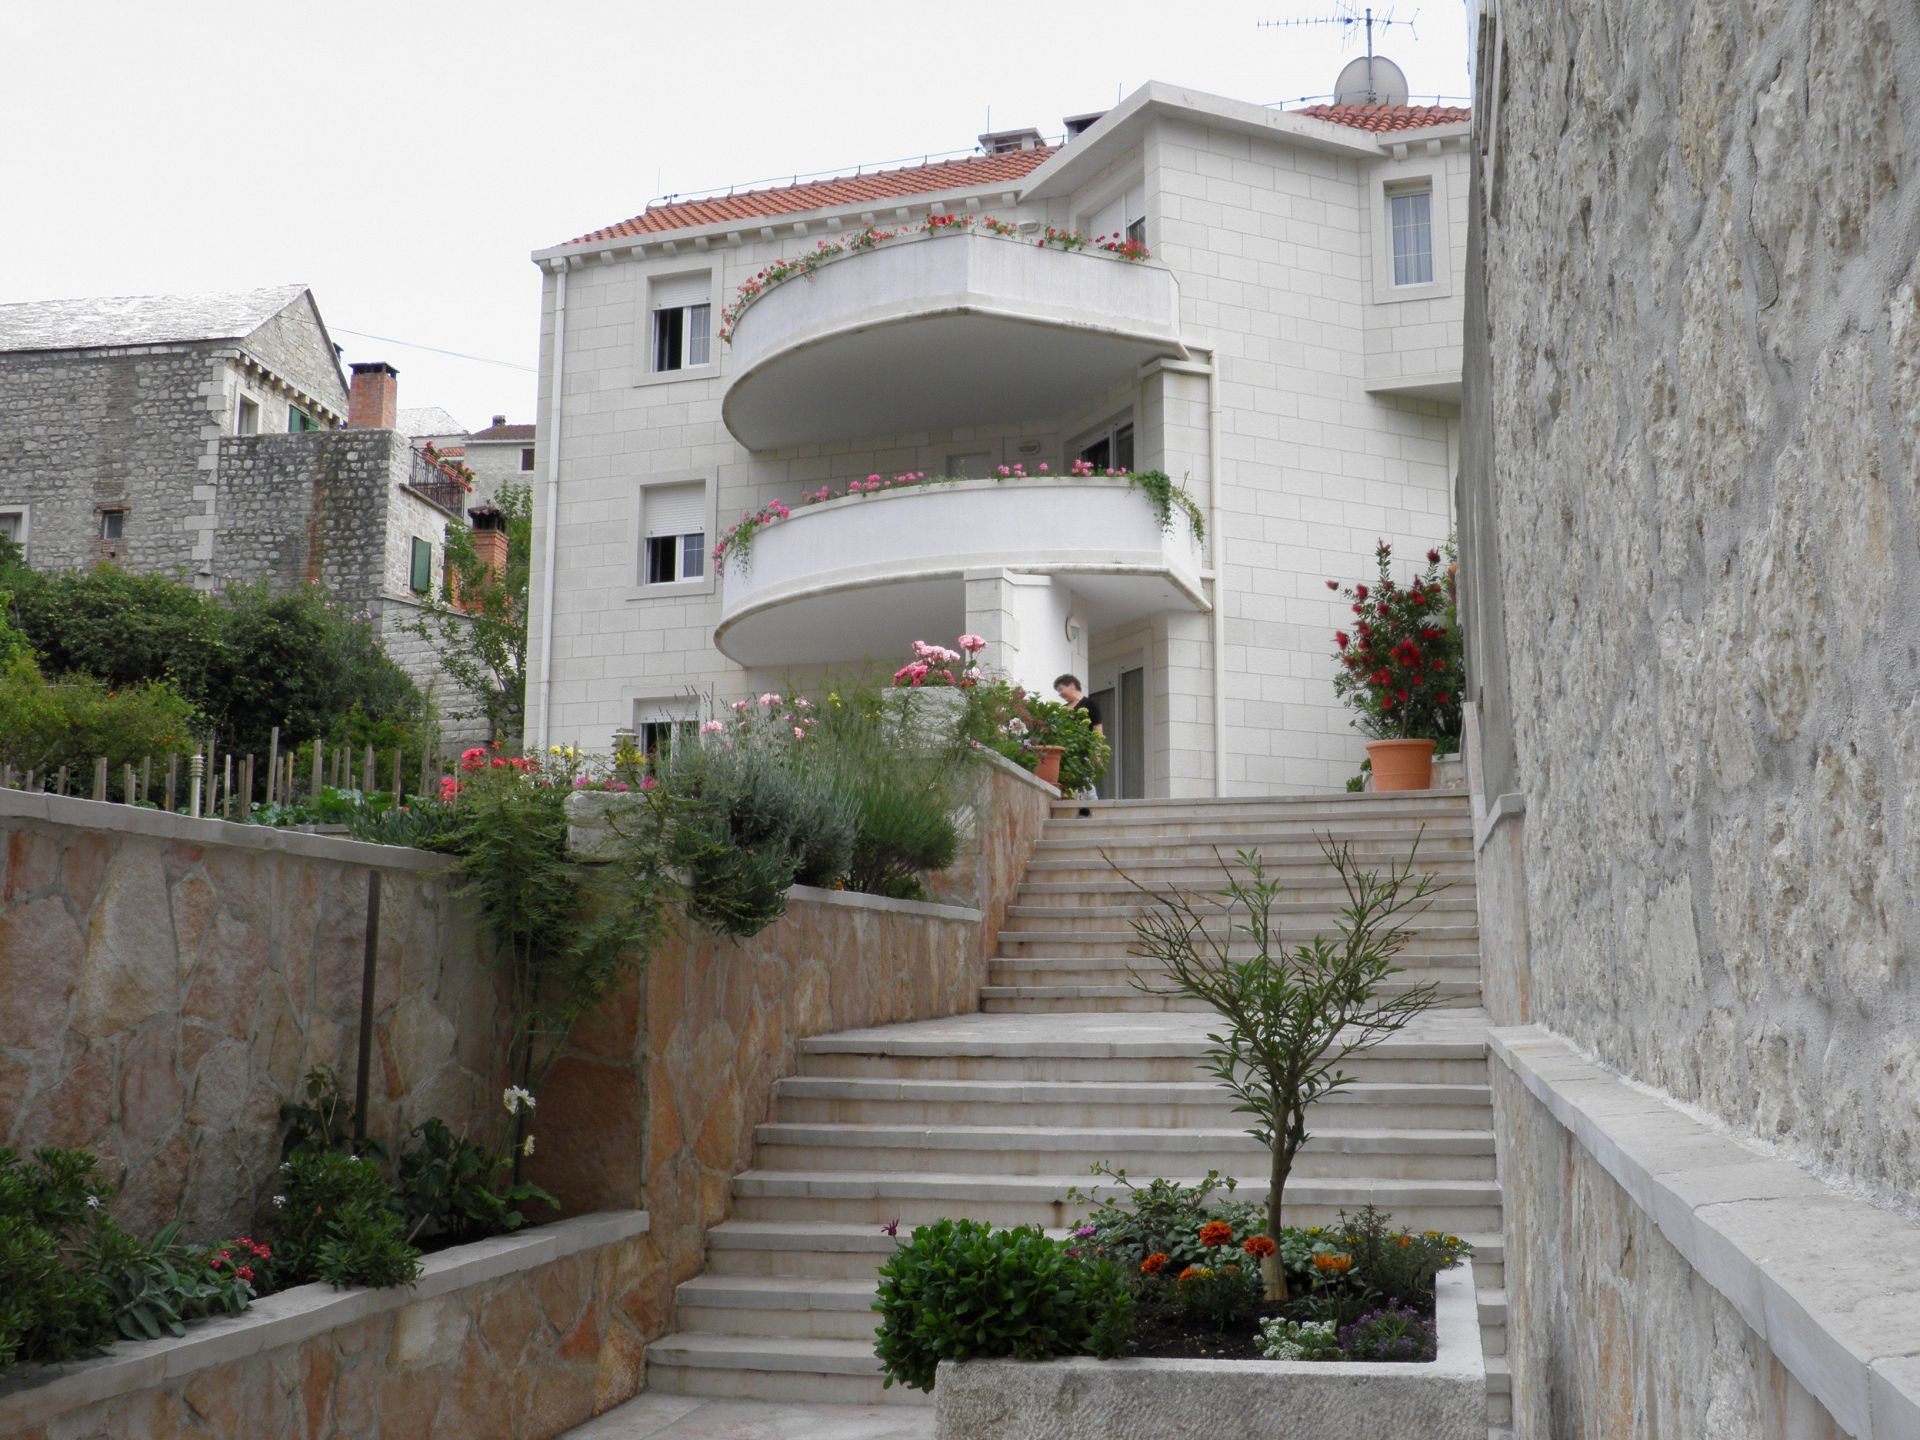 36115 - Pucisca - Apartments Croatia